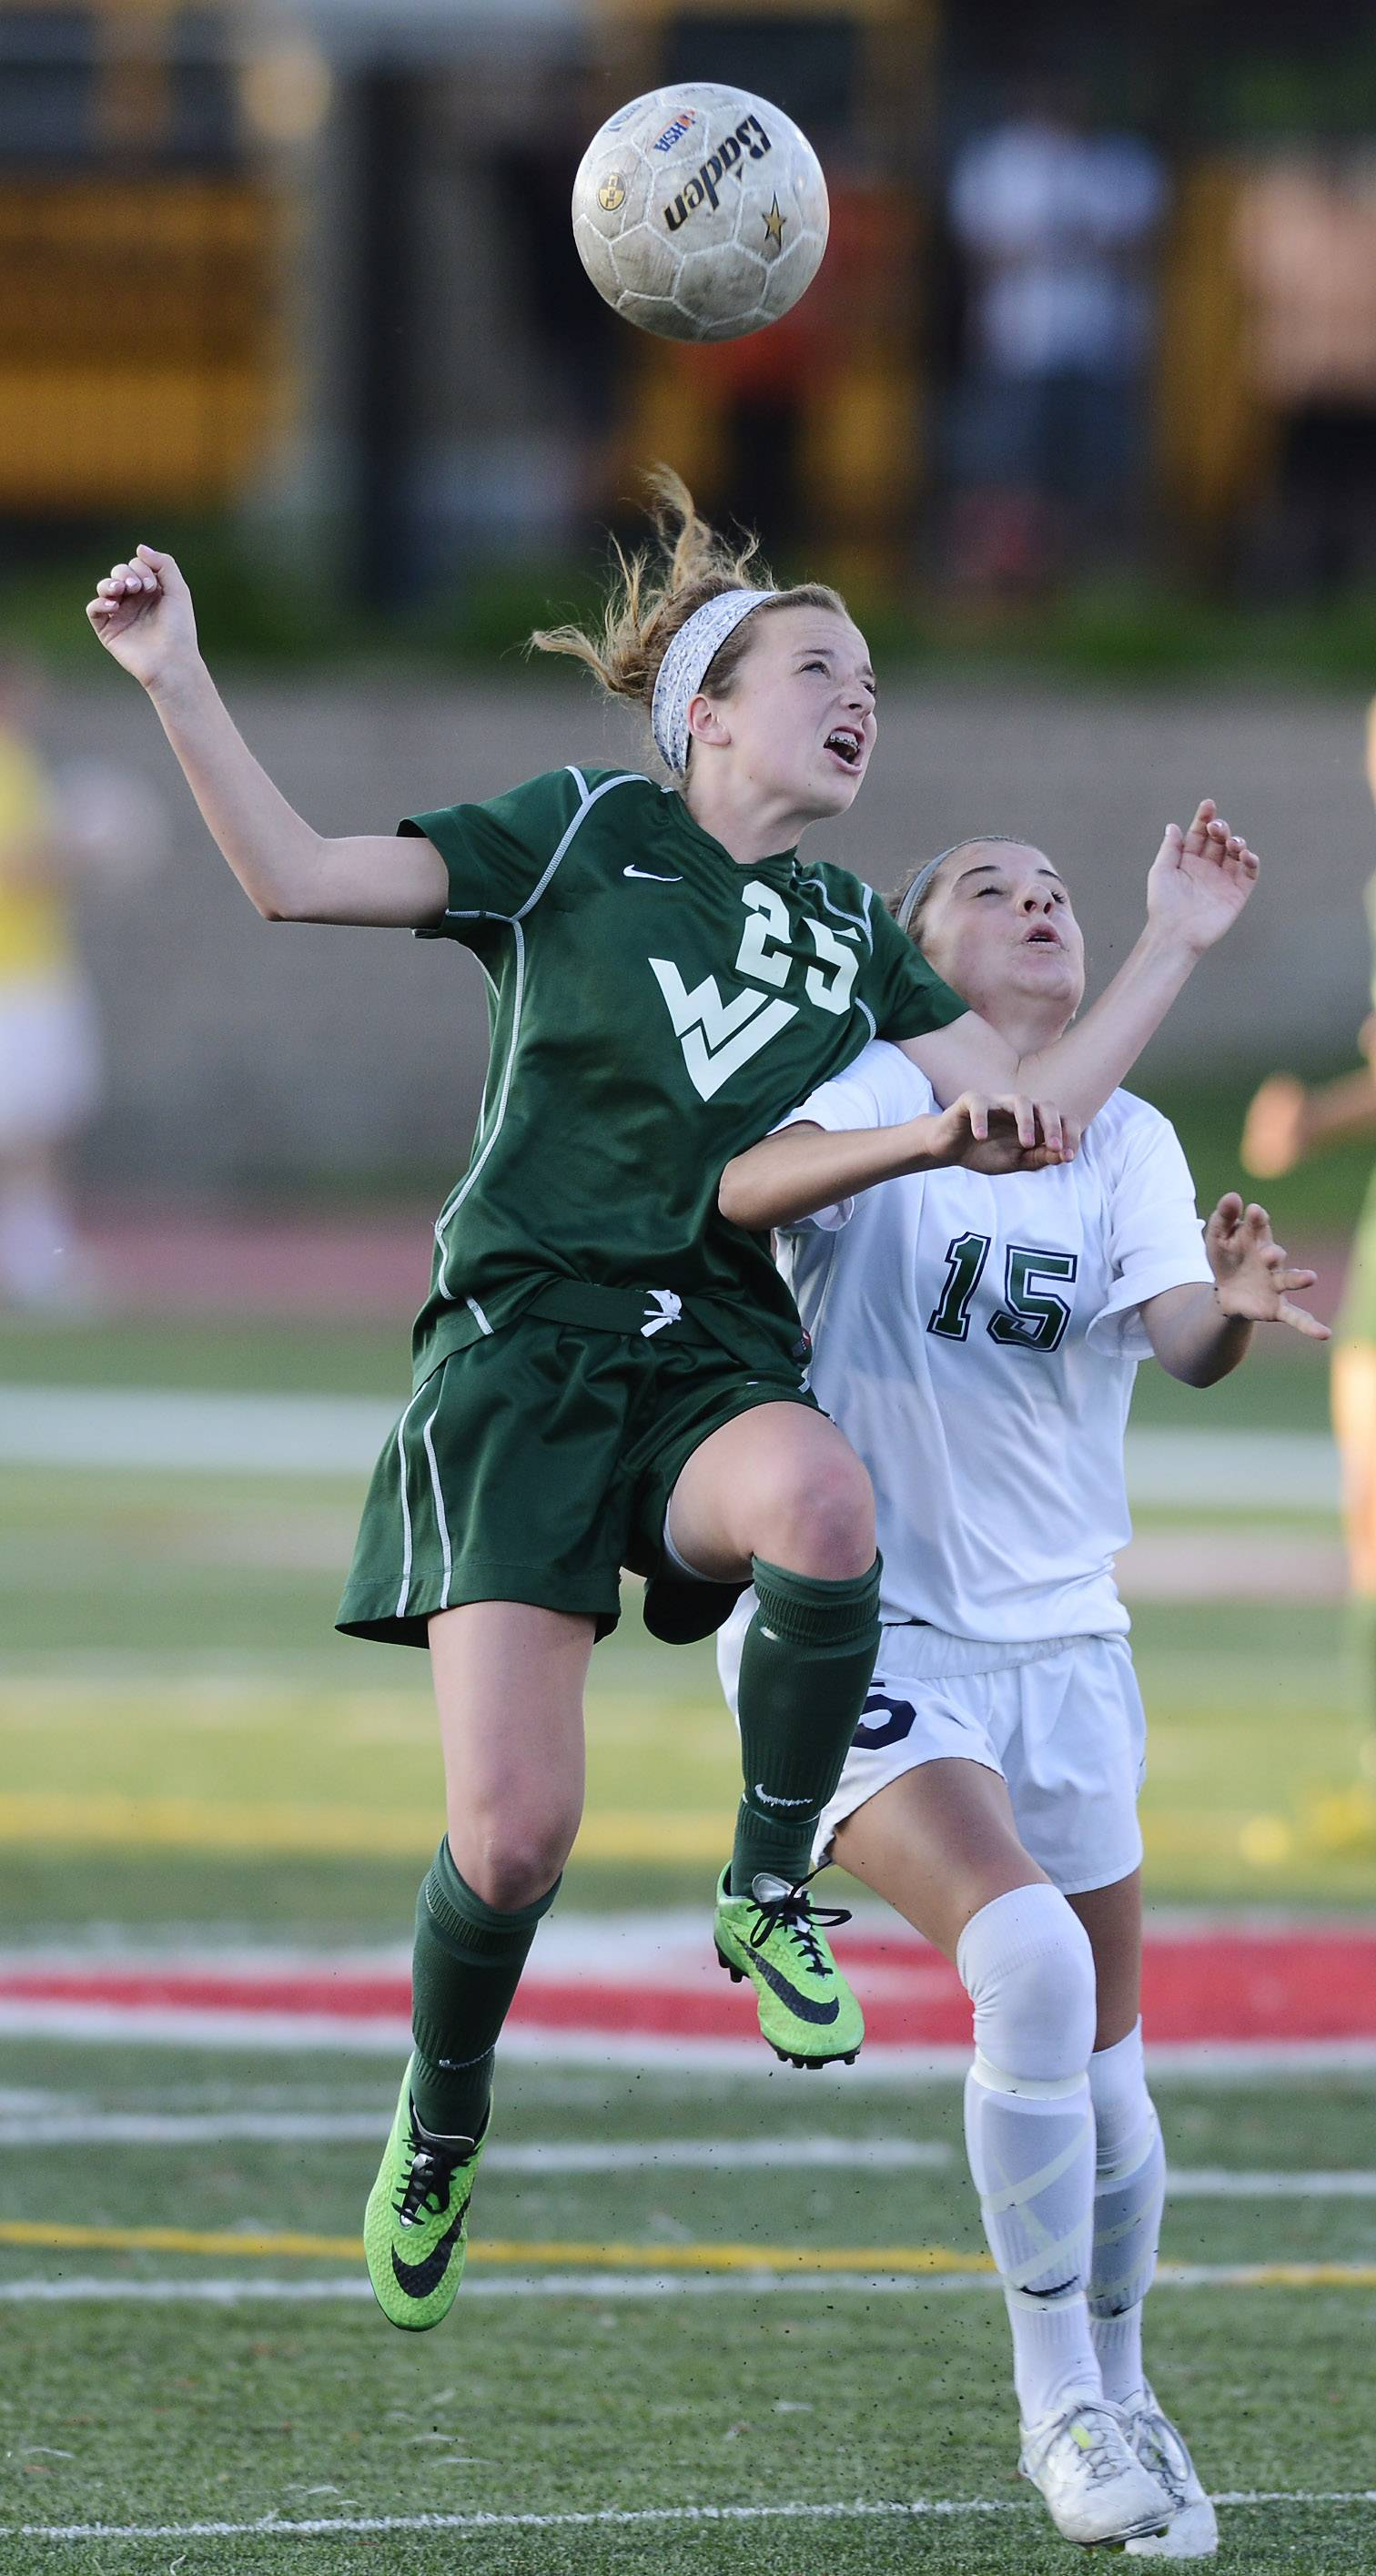 Sarah Griffith, left, of Waubonsie Valley, and Celia Frei of New Trier leap for a header during the girls soccer Class 3A state semifinal at North Central College in Naperville Friday.